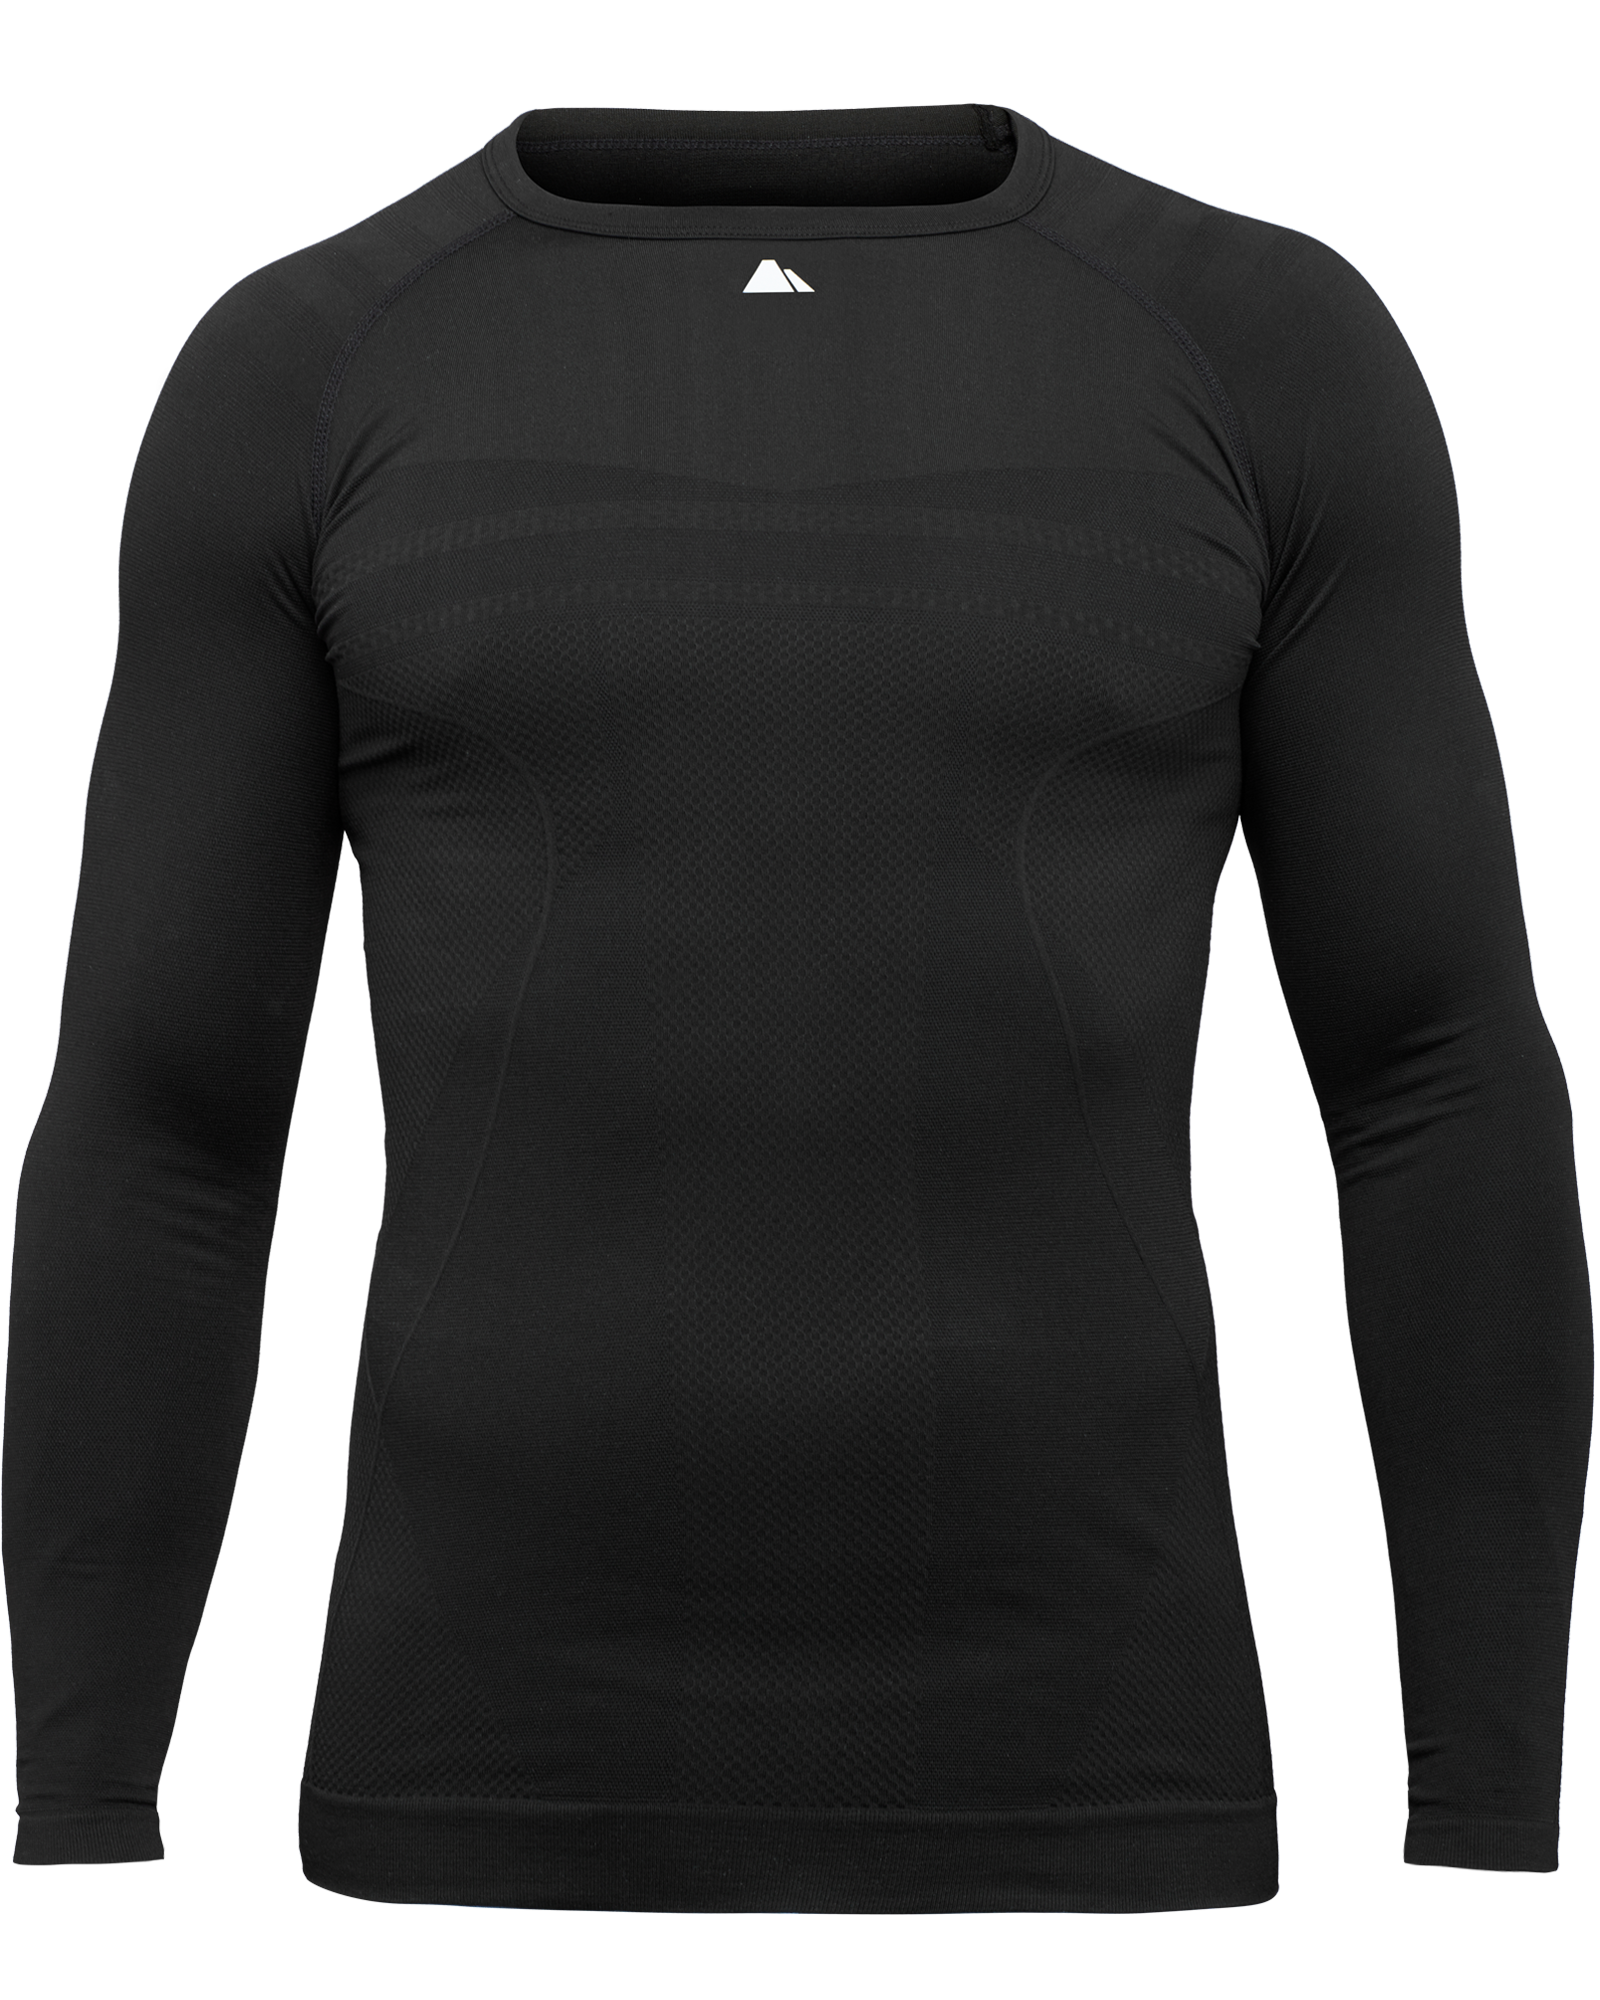 Canyon Signature Pro LS Base Layer | Undertøj og svedtøj